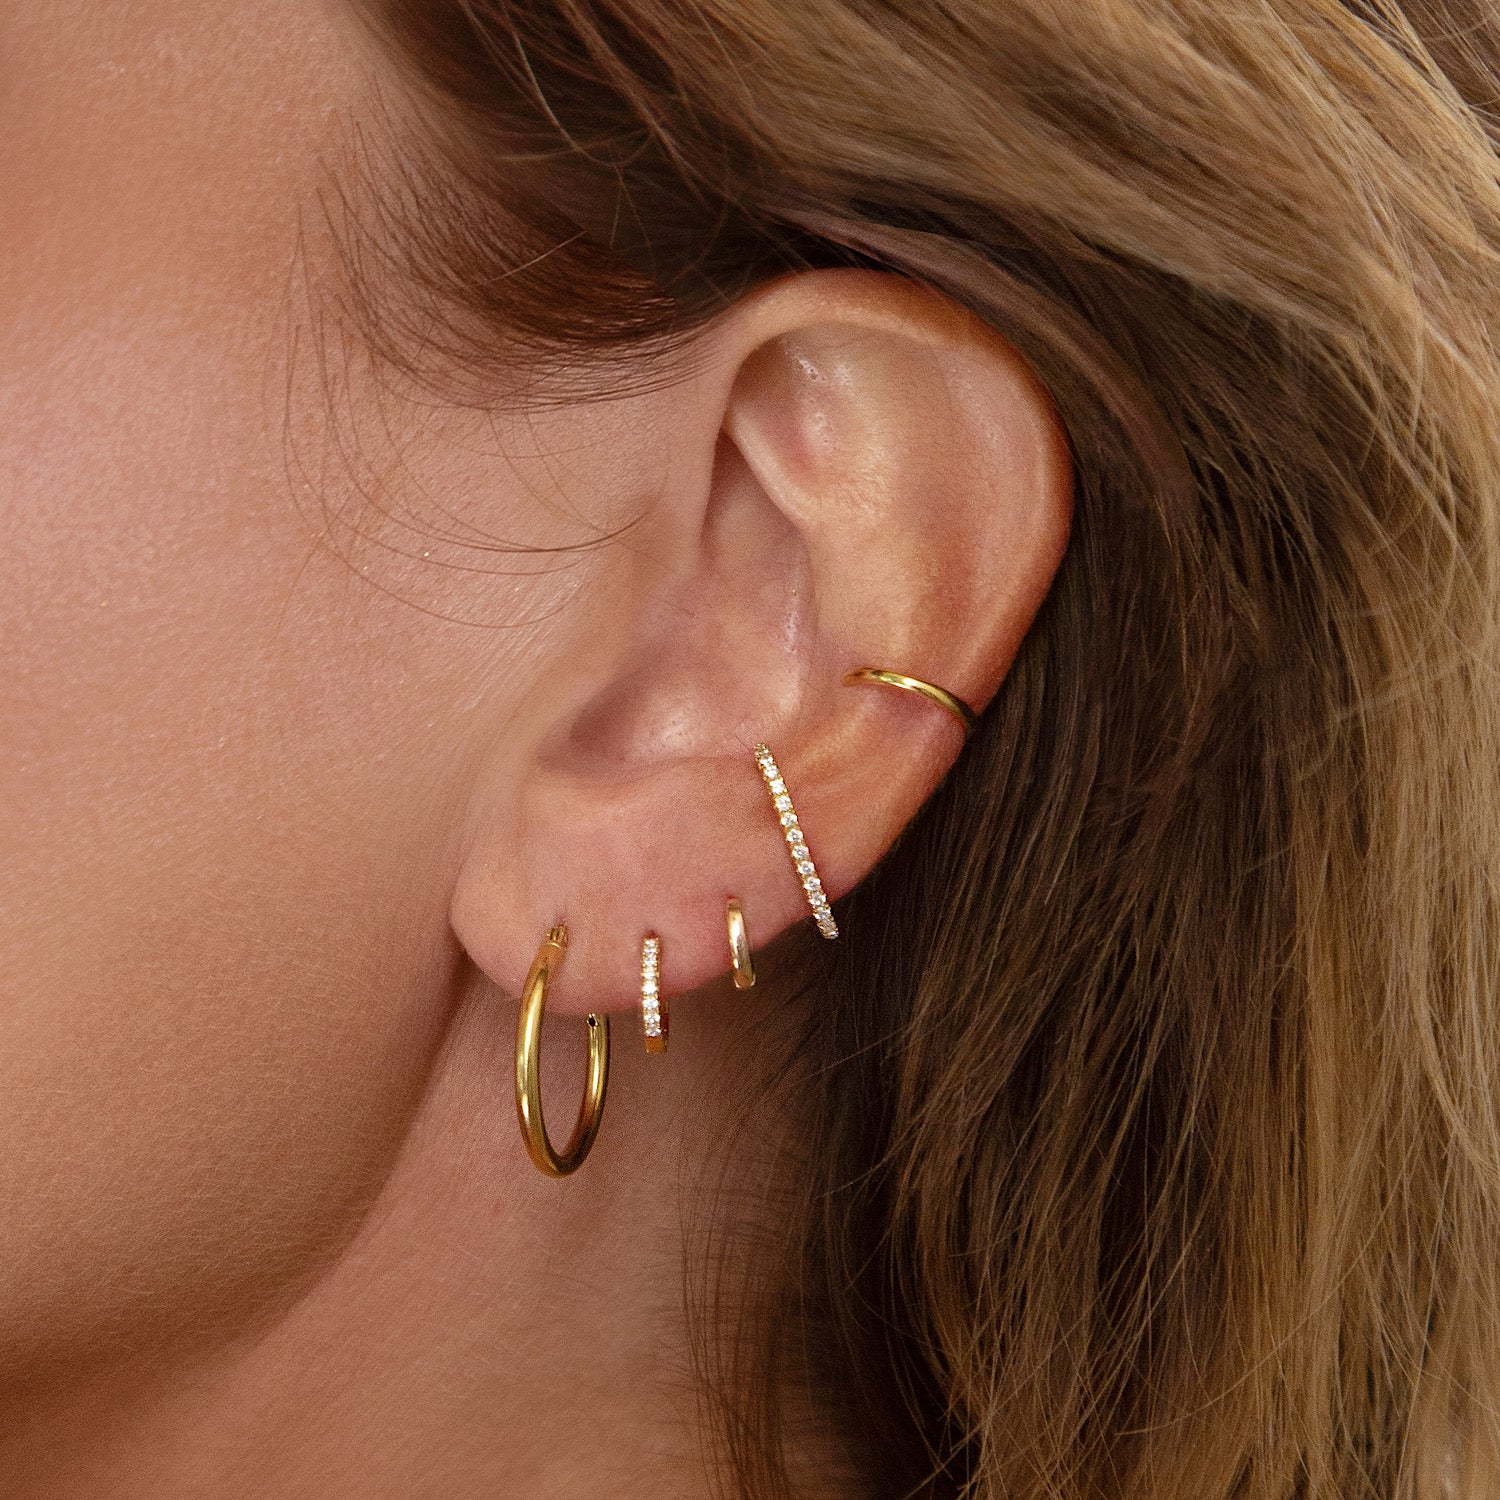 Gold ear stack made of hoops, huggie earrings, suspender earrings and ear cuff